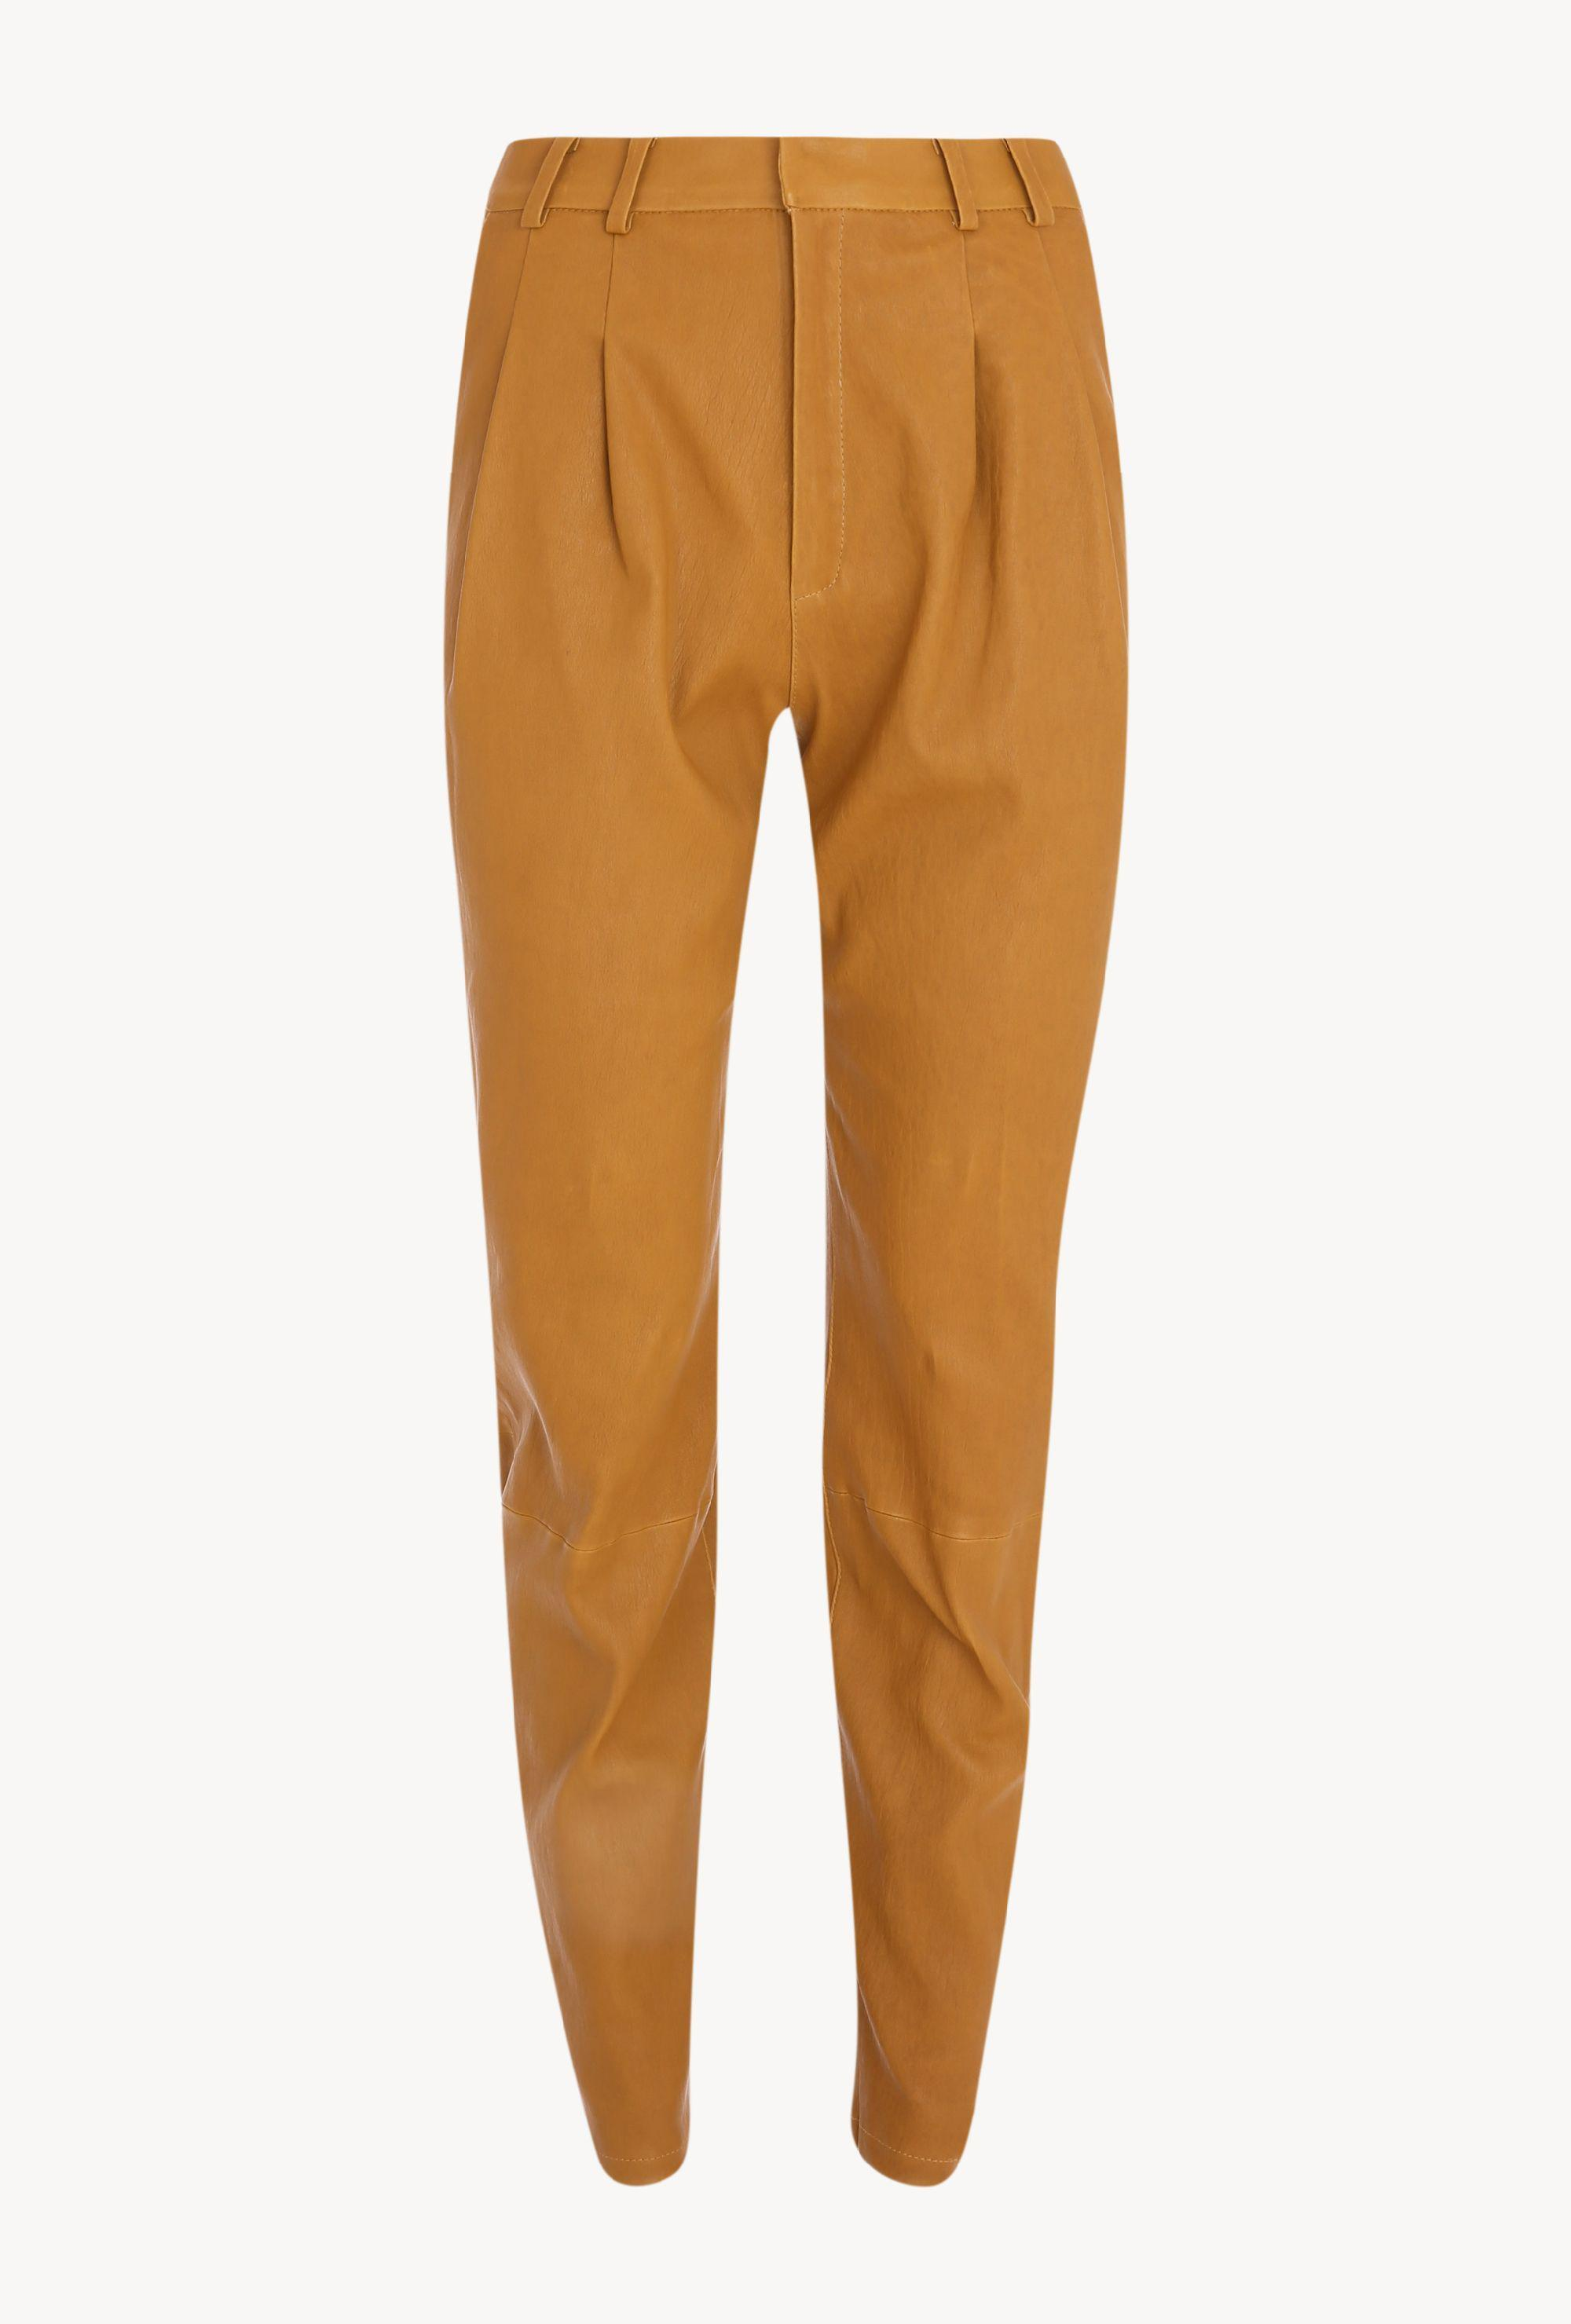 Moss Gold Leather Tailored Trouser 3